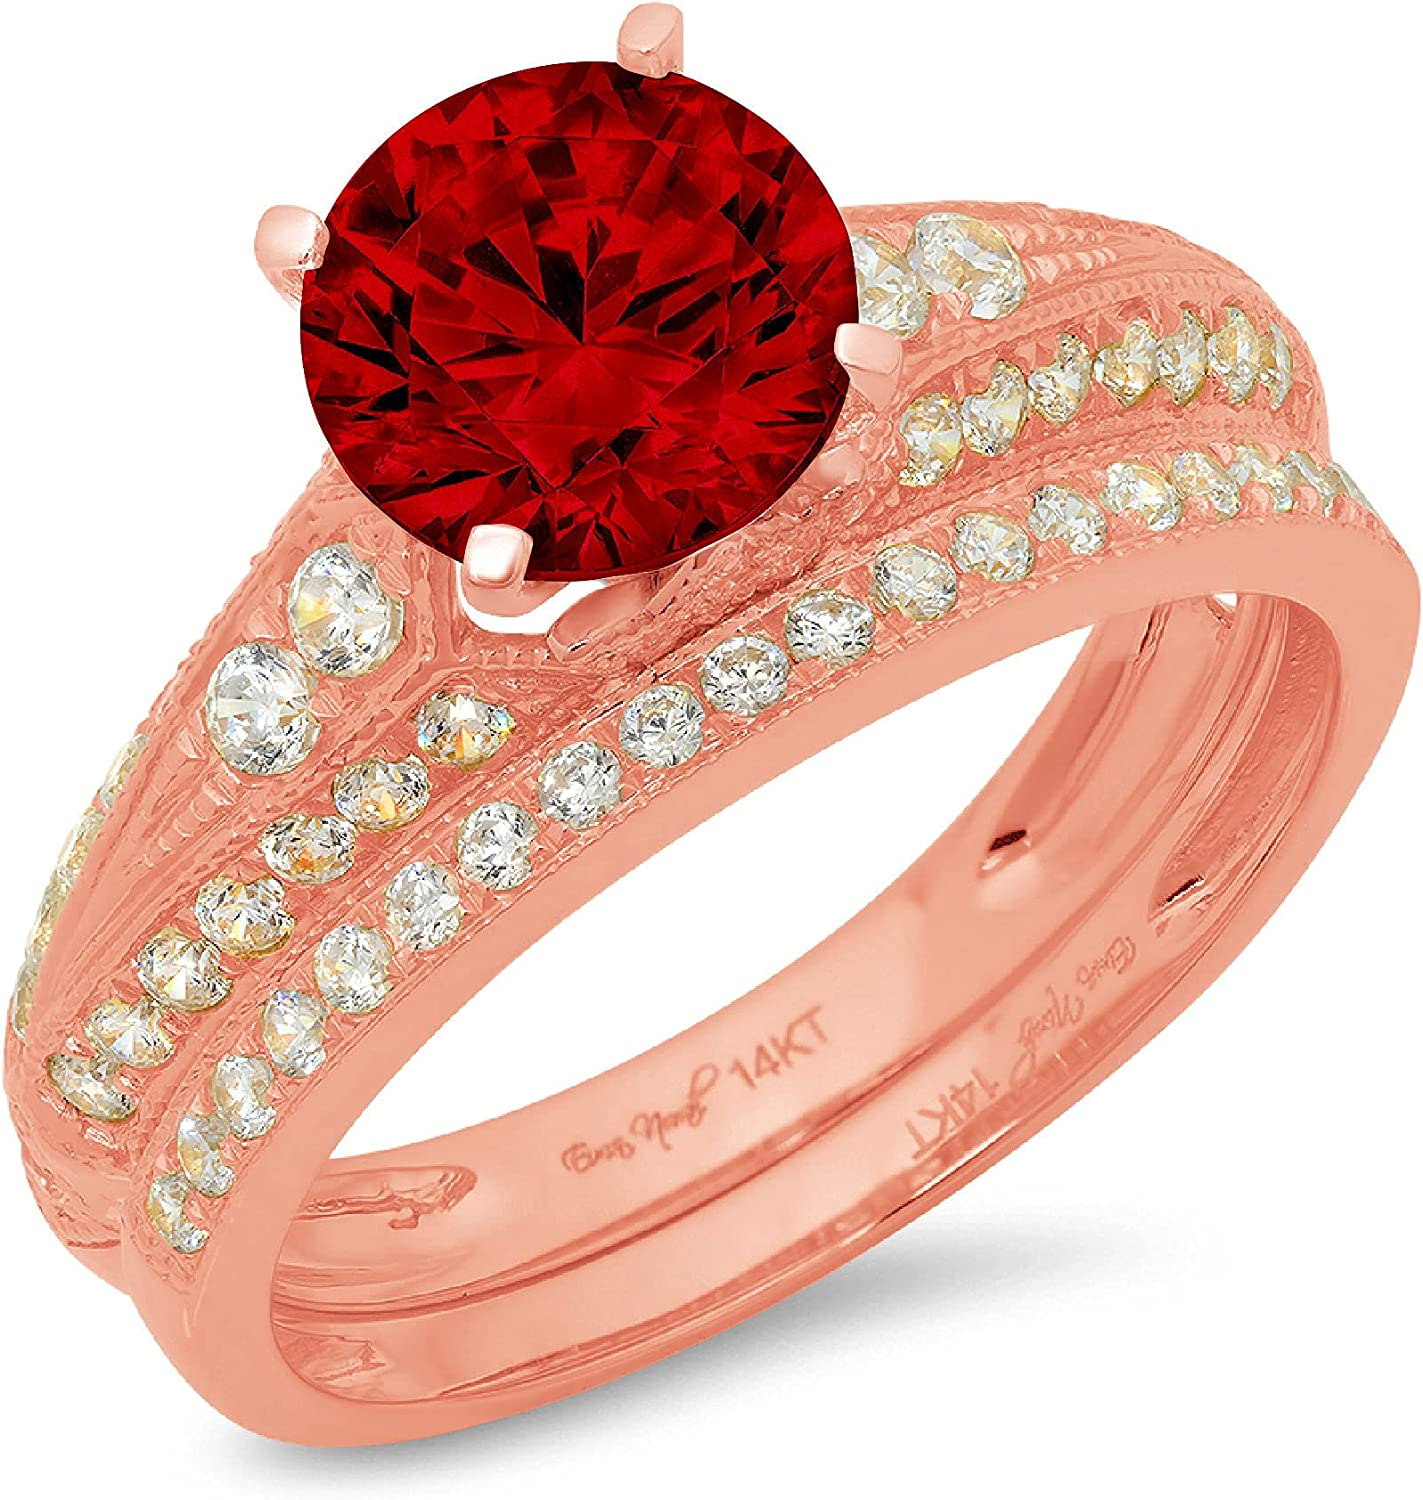 Clara Pucci 2.10ct Round Cut Pave Solitaire Accent Genuine Flawless Natural Red Garnet Engagement Promise Statement Anniversary Bridal Wedding Ring Band set Solid 18K Pink Rose Gold